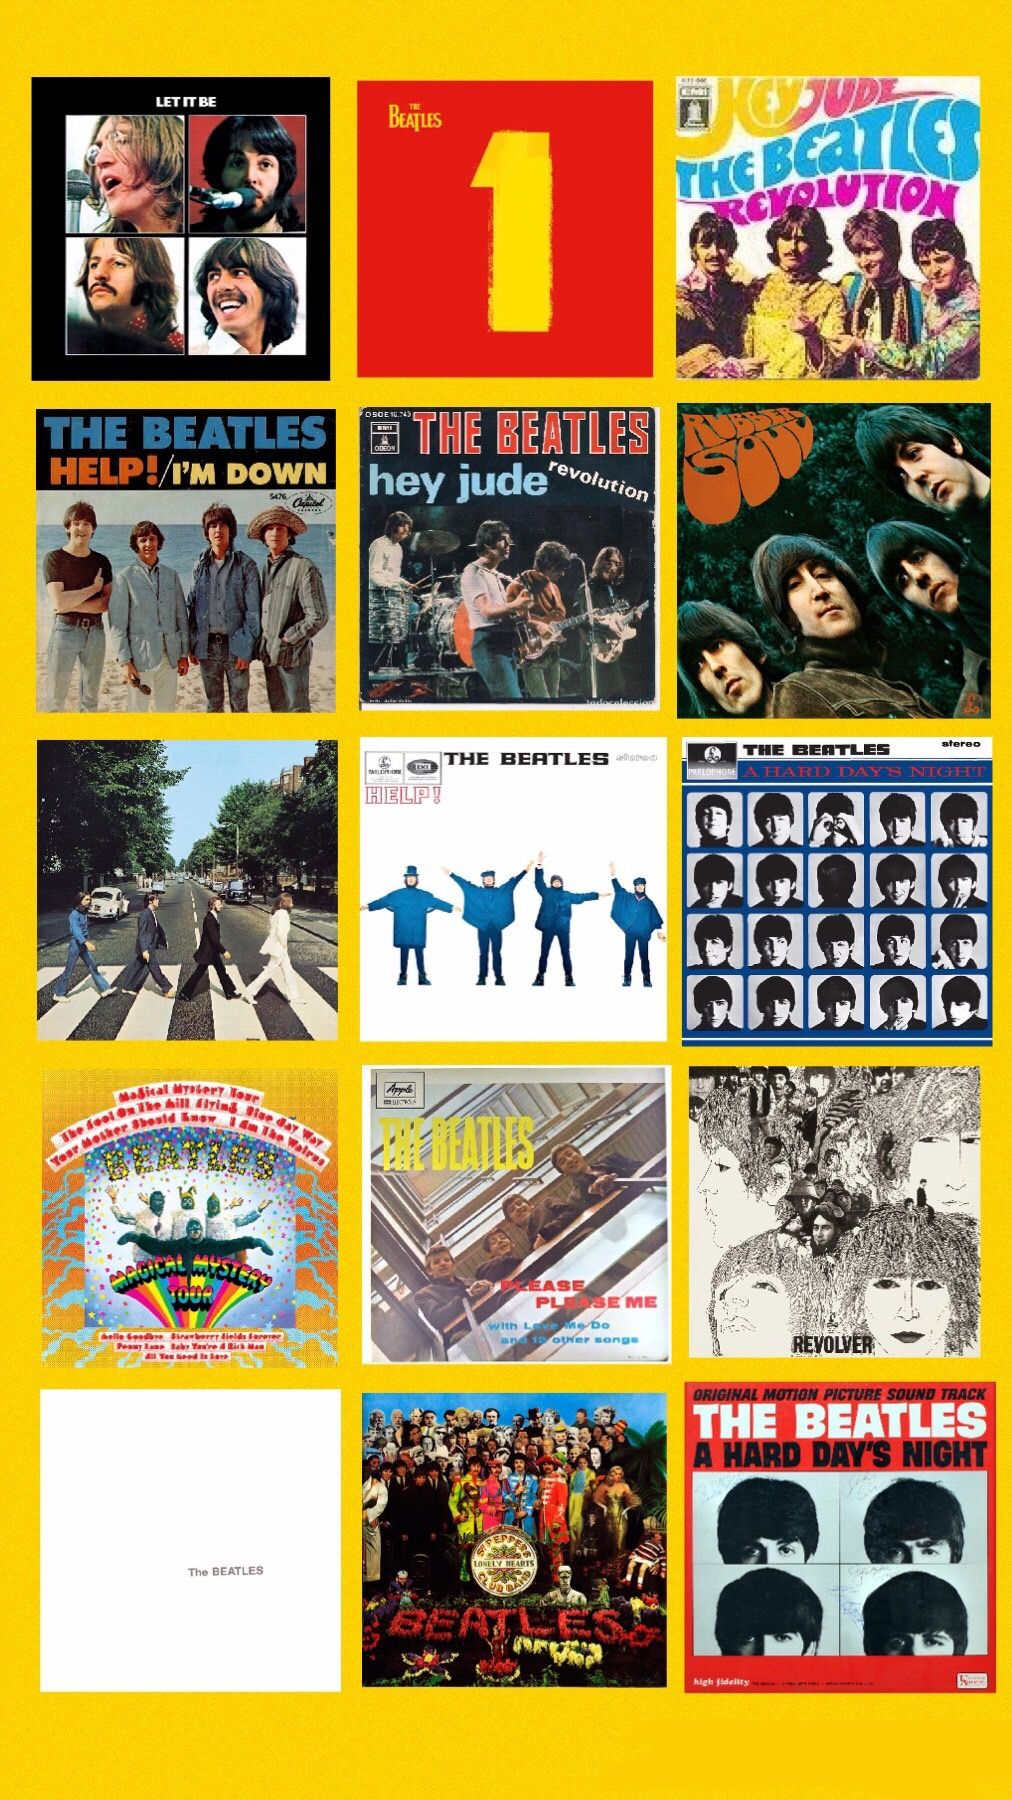 Pin by Jordyn Punt on iPhone (With images) Beatles